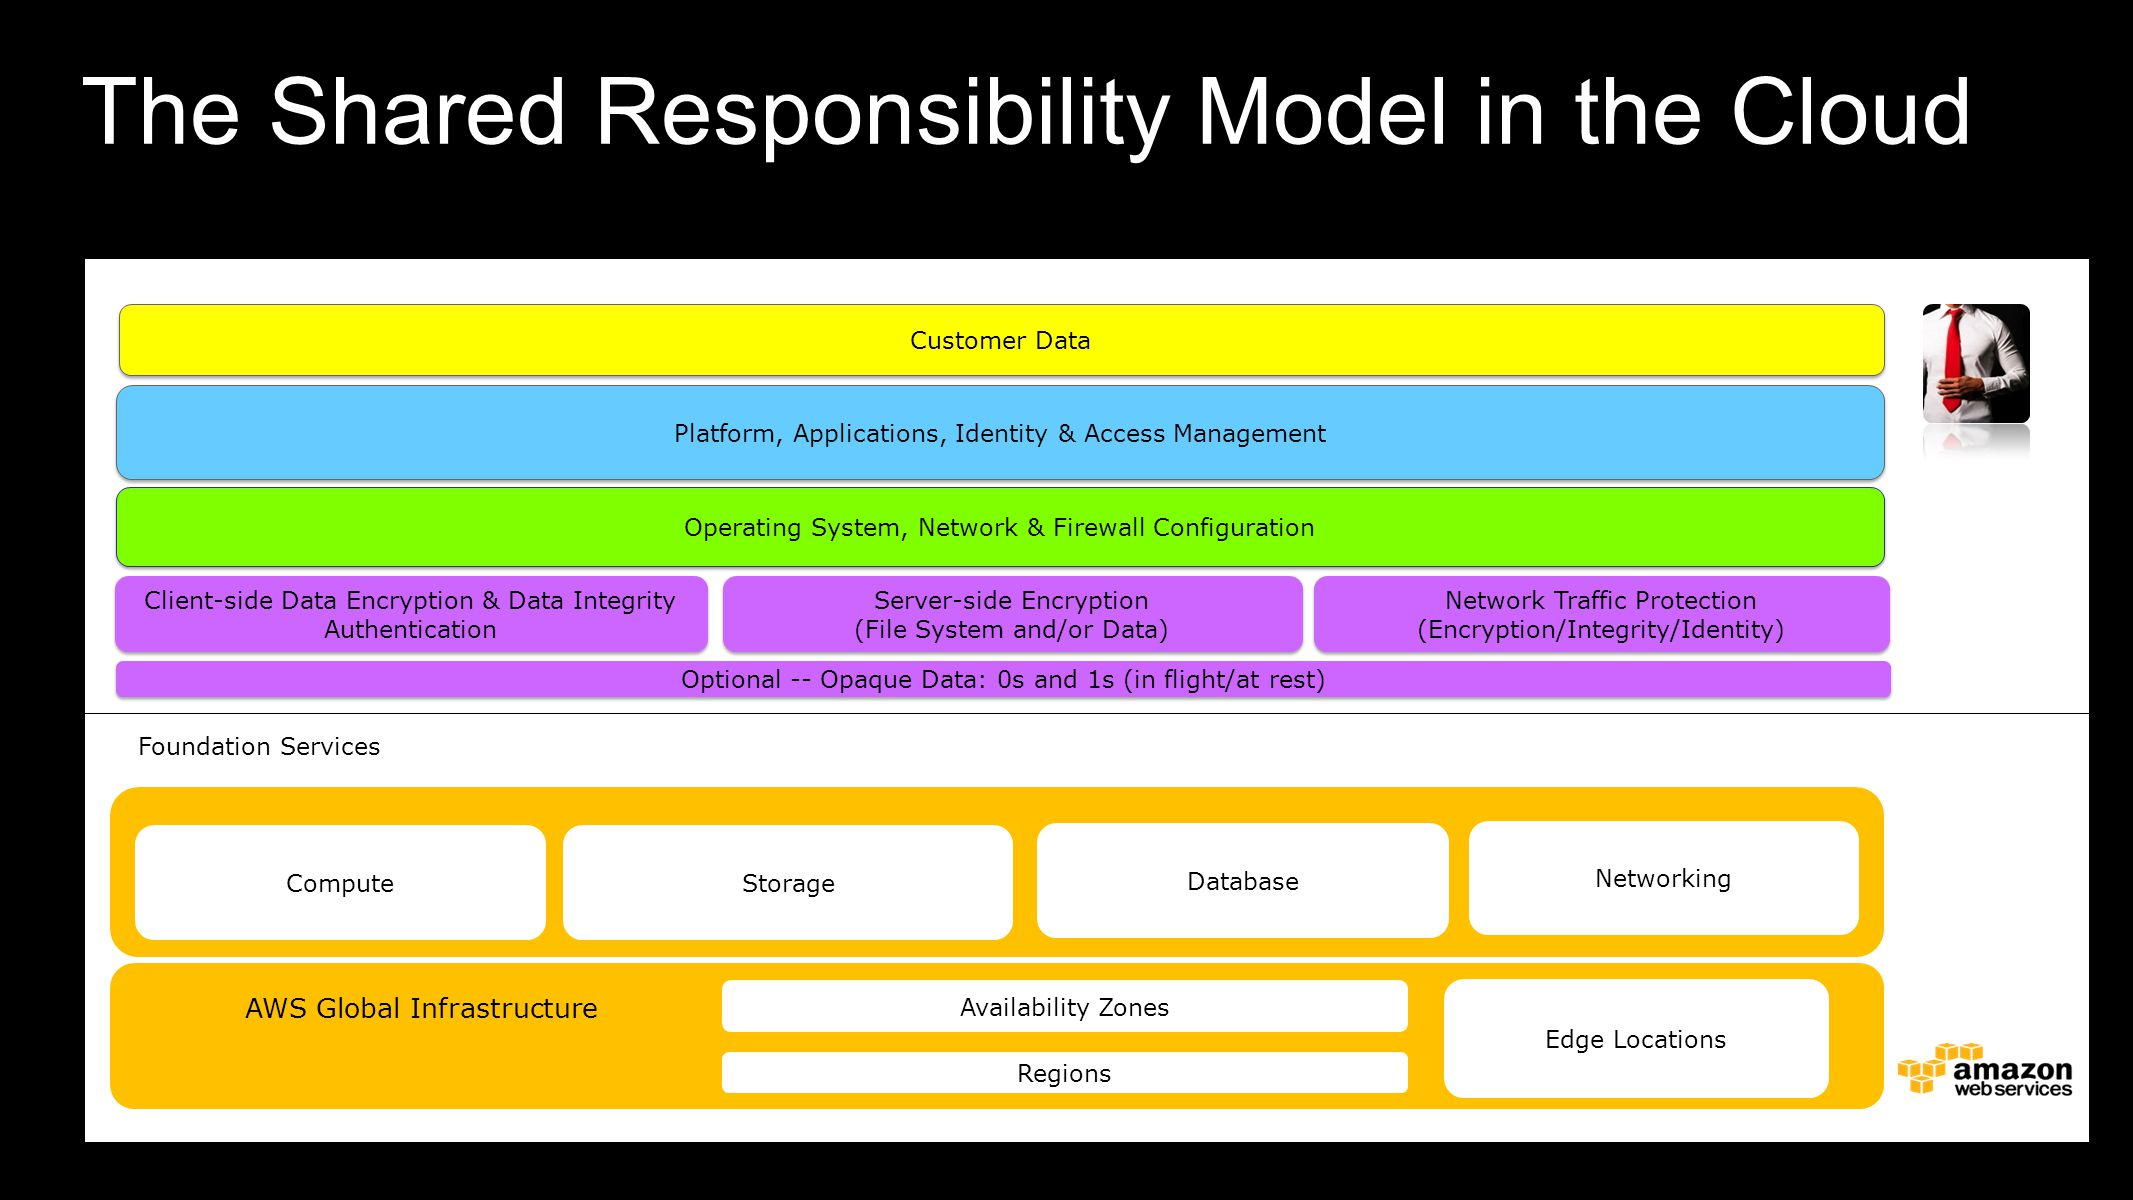 The Shared Responsibility Model in the Cloud